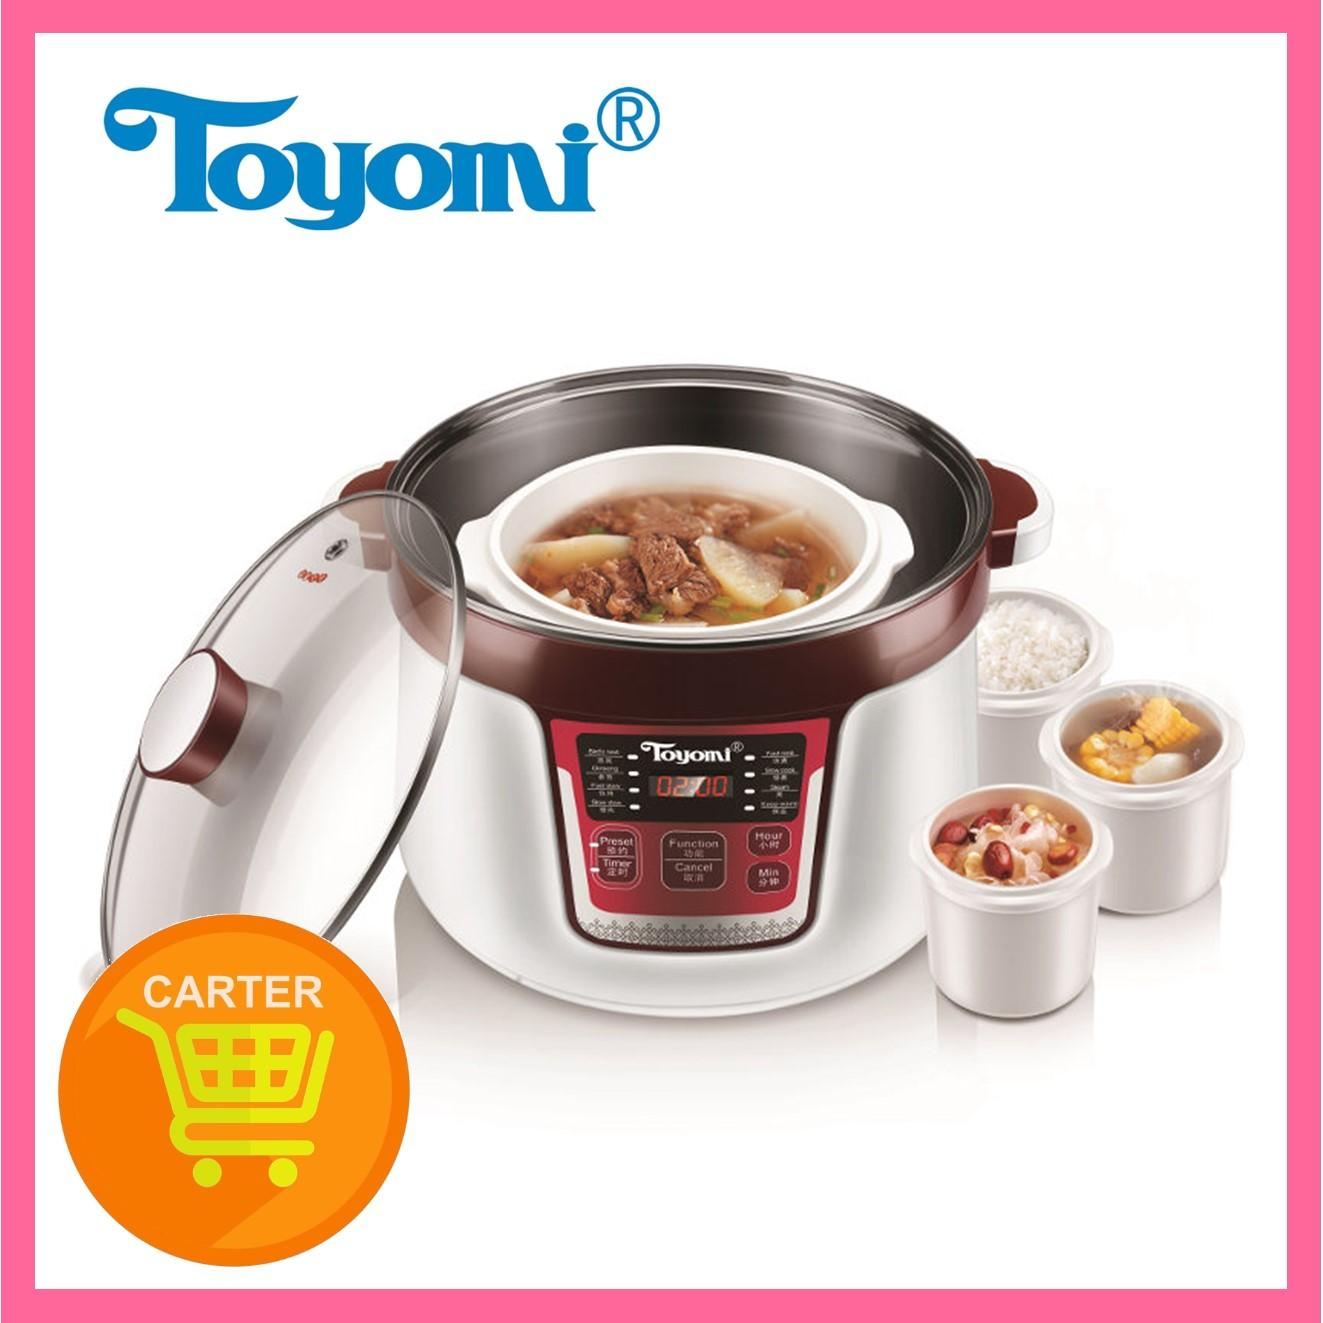 Toyomi SC 3289 Micro-Computer Control Slow Cookers